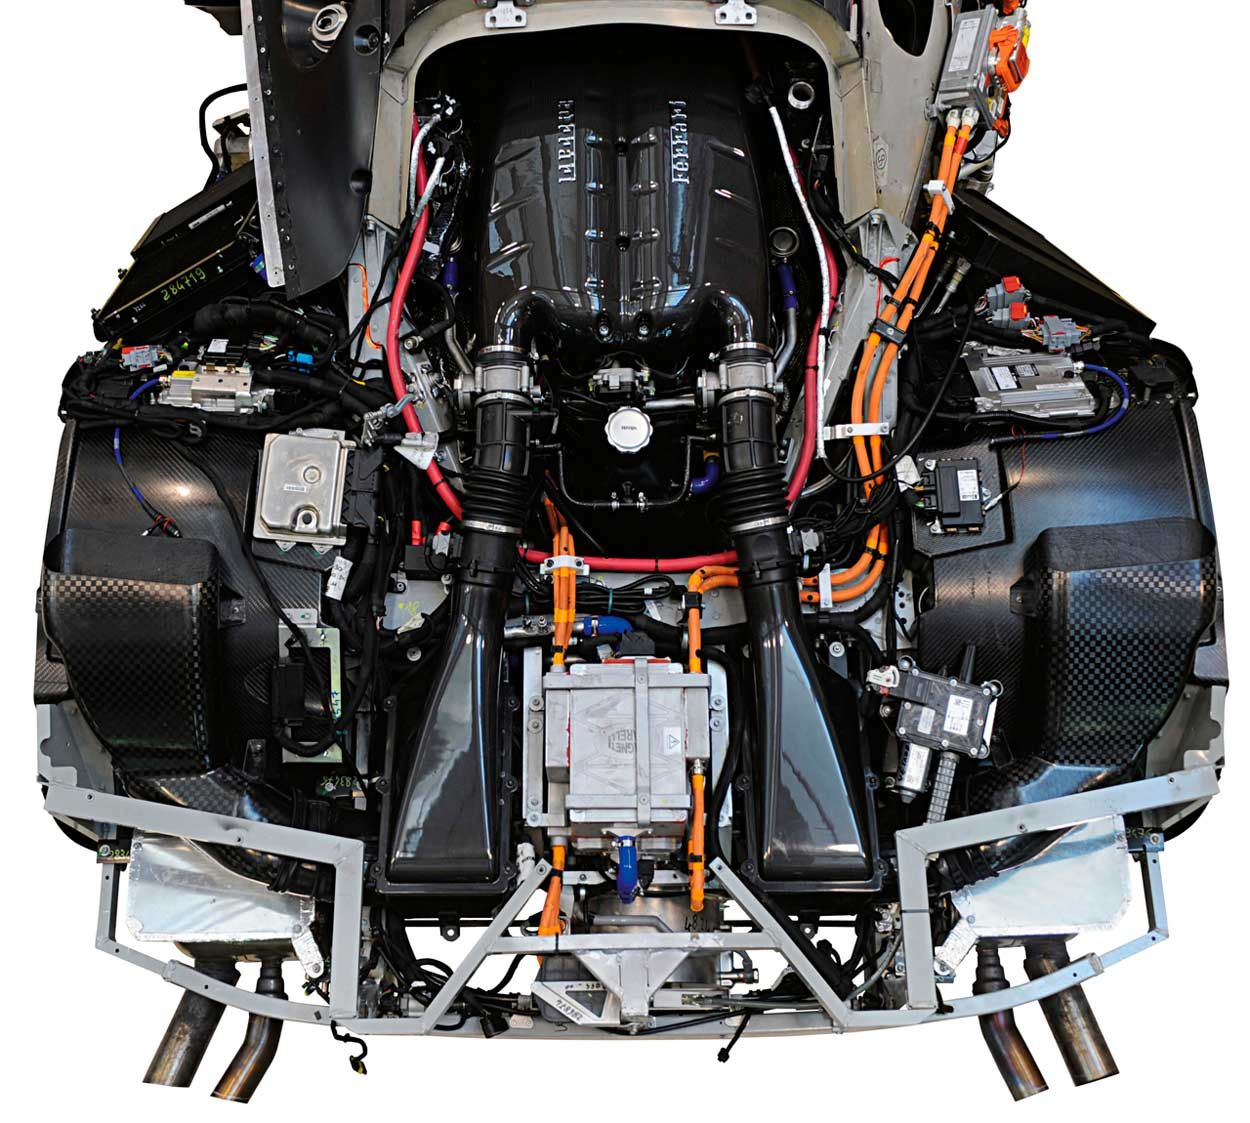 mclaren f1 engine details cars as art mclaren pinterest rh pinterest com McLaren F1 Road Car McLaren F1 Interior